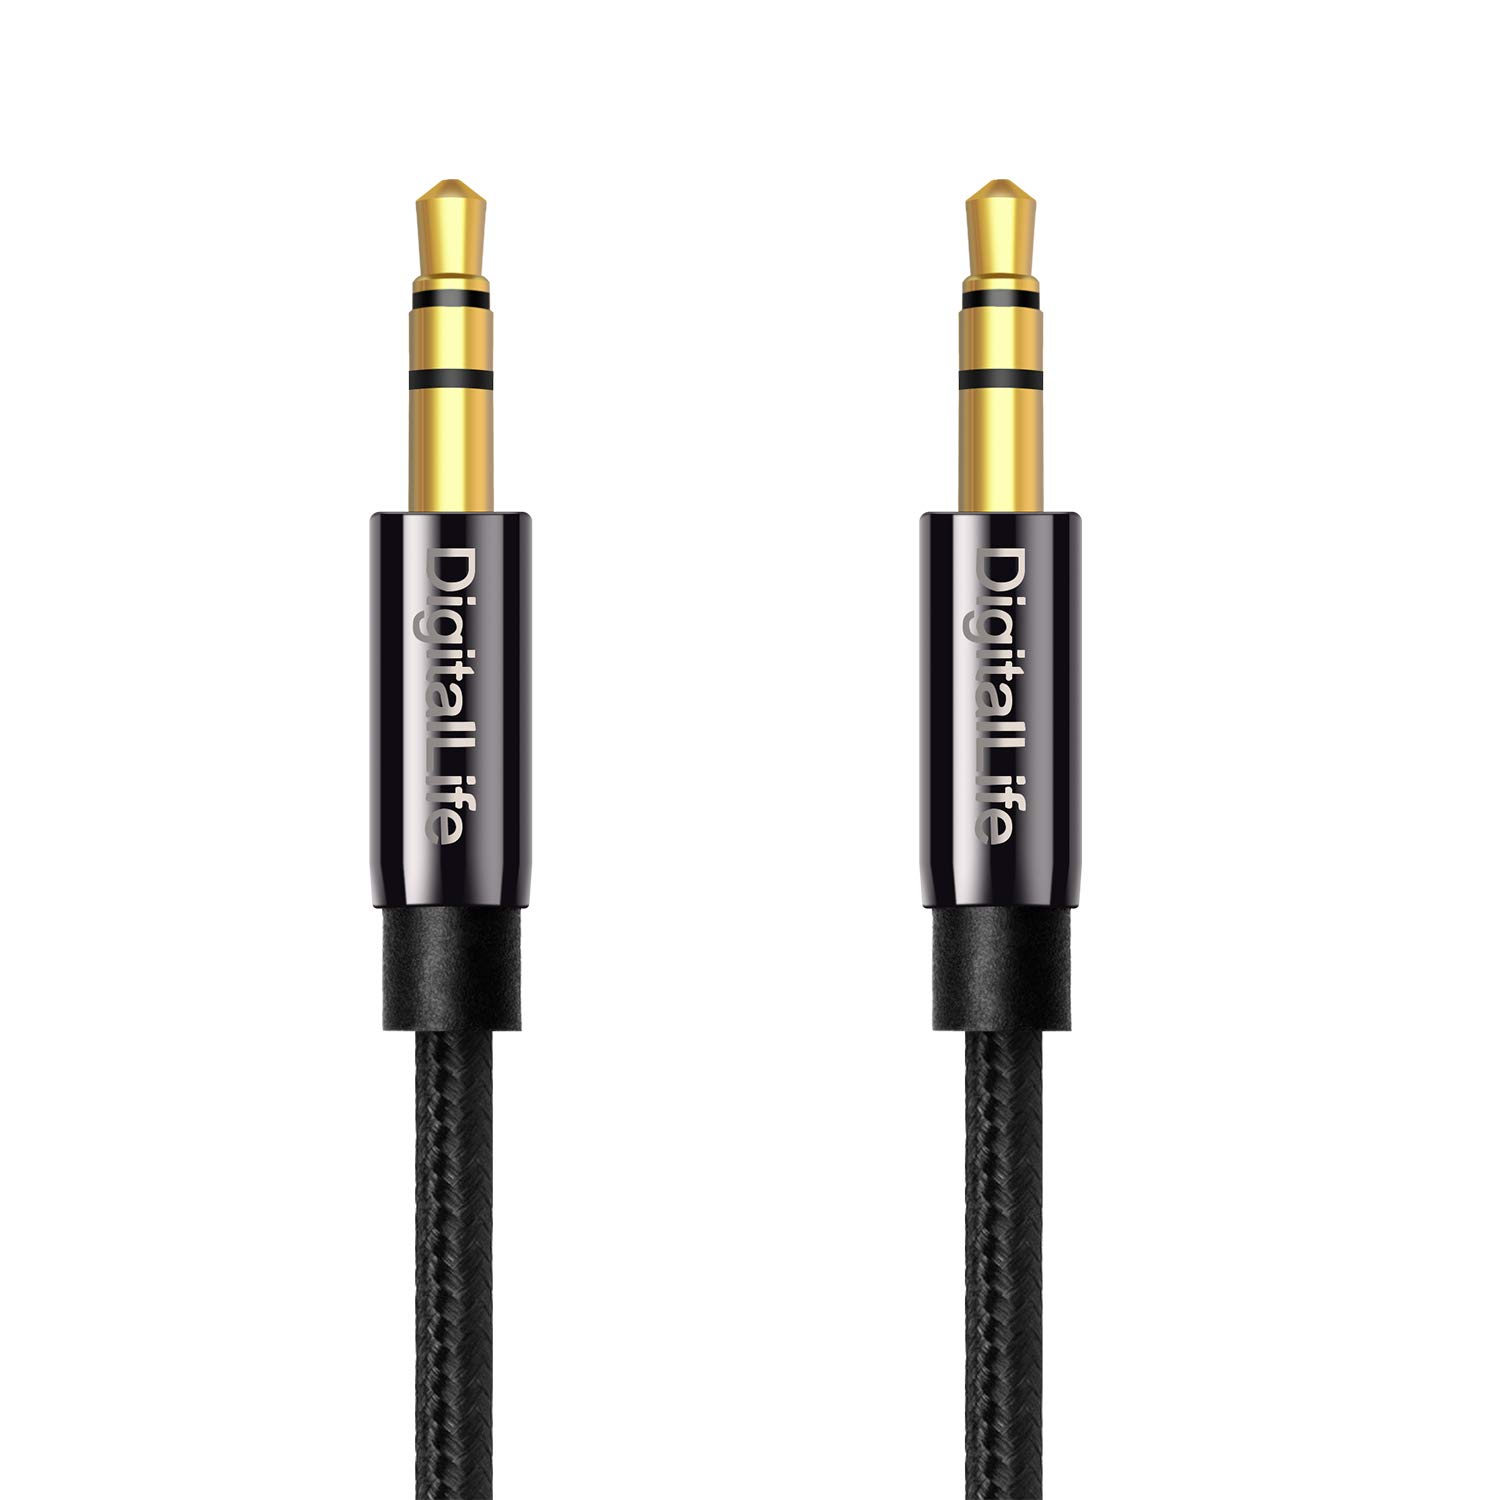 DigitalLife Stereo Audio Cable - 3.5mm Male to 2X RCA Female